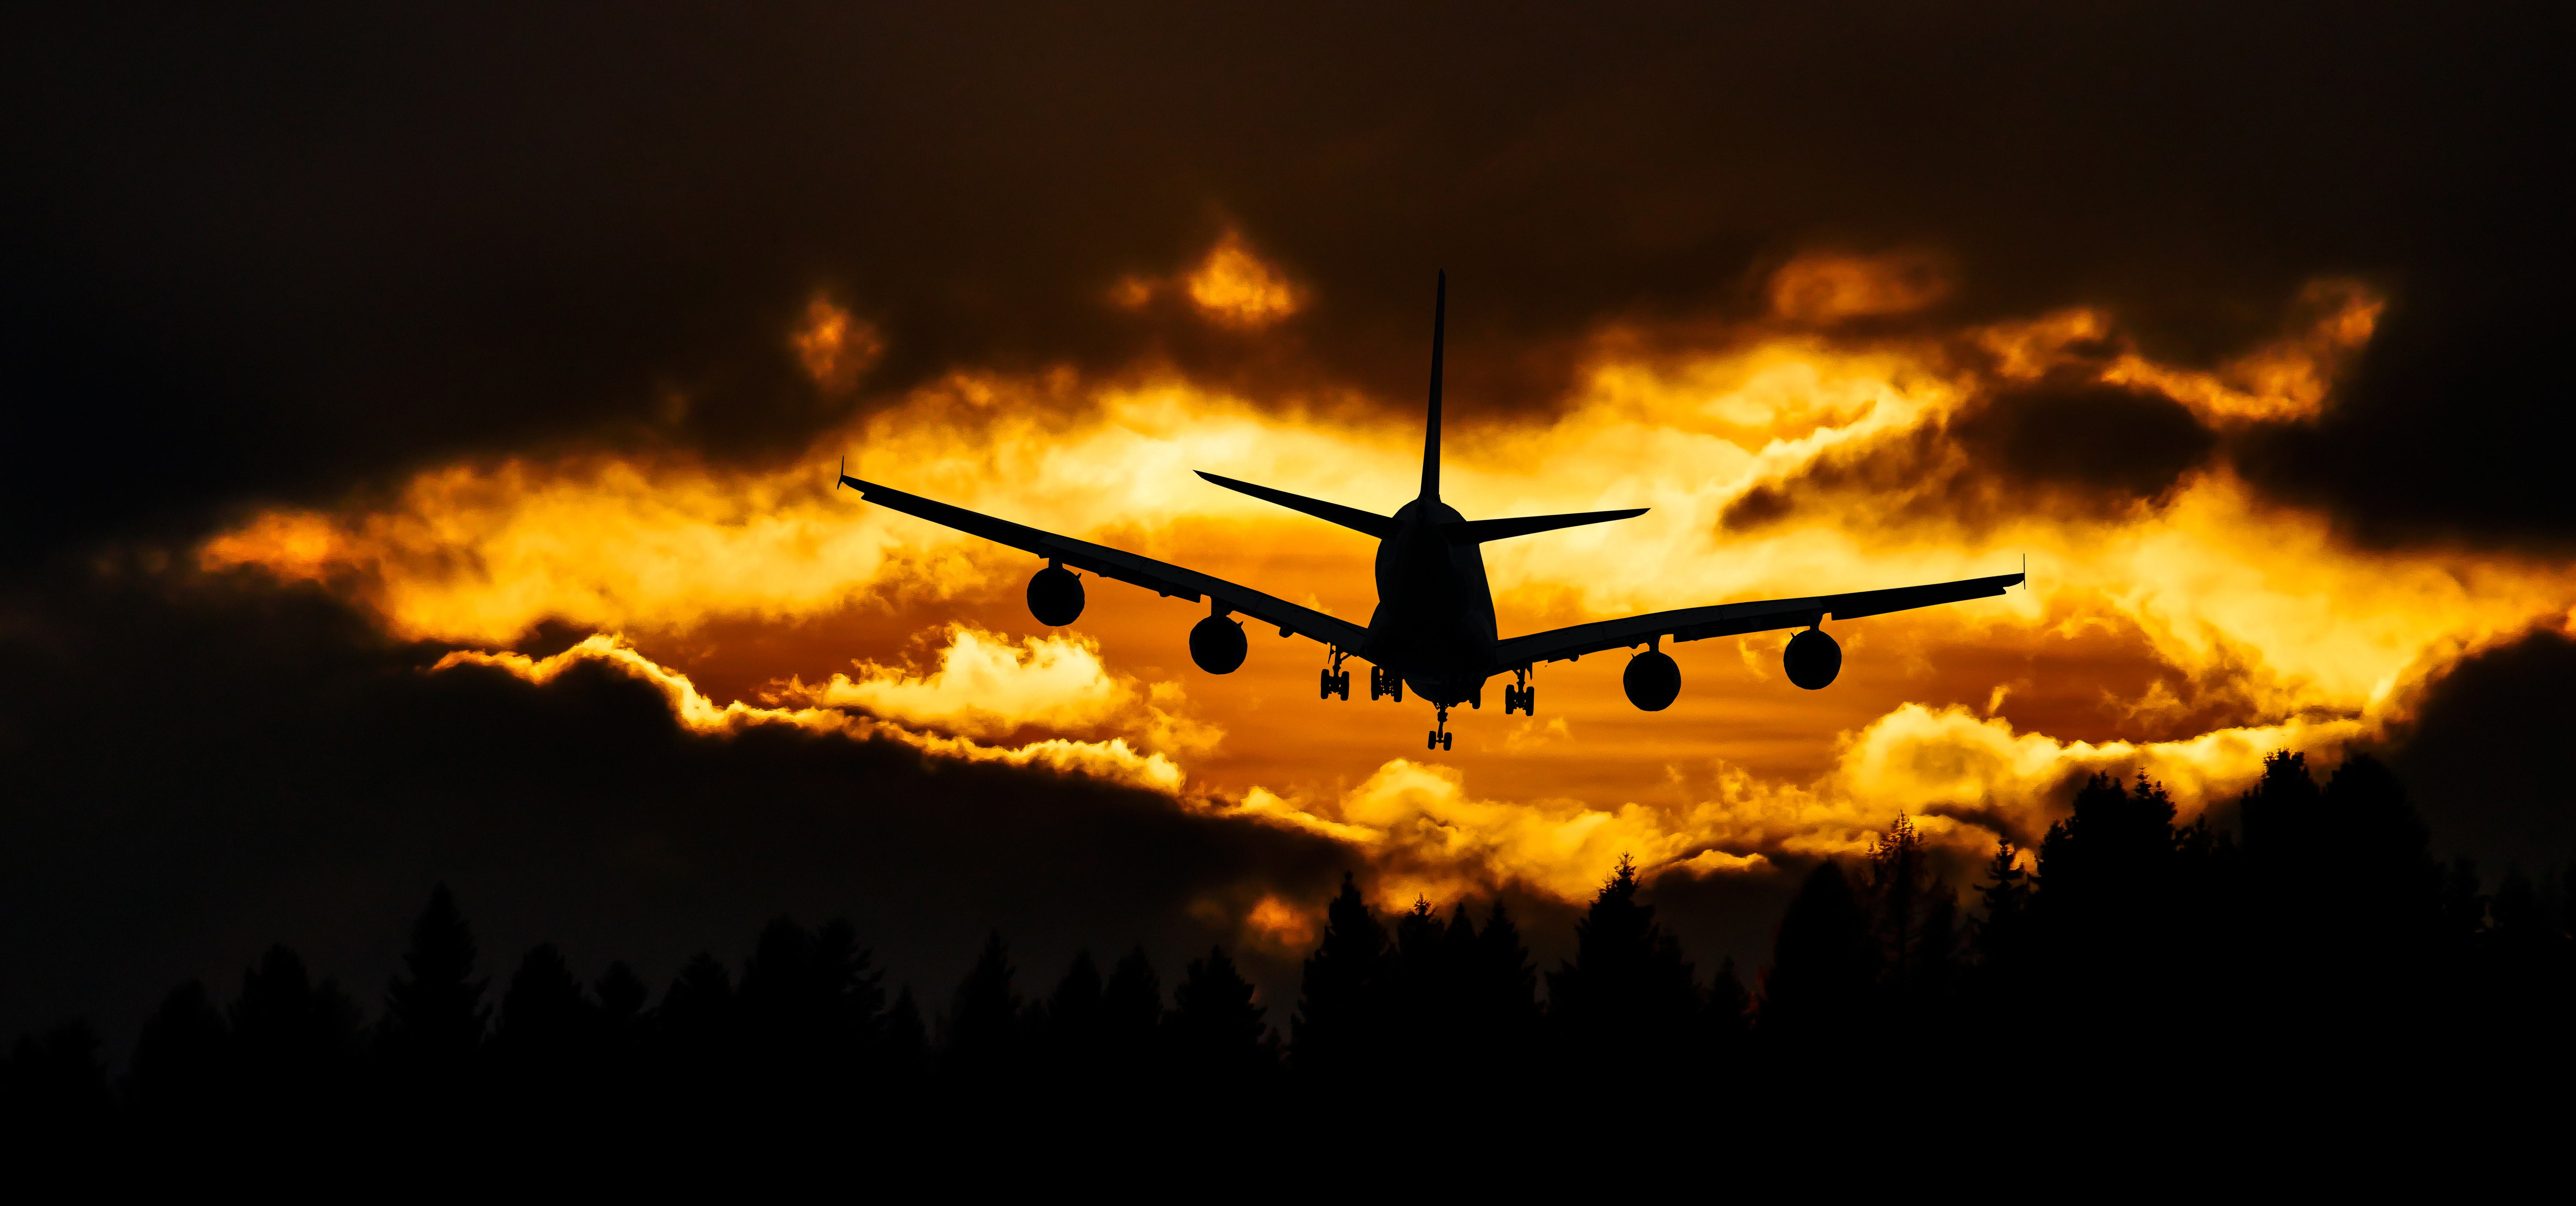 Airplane silhouette on air during sunset photo